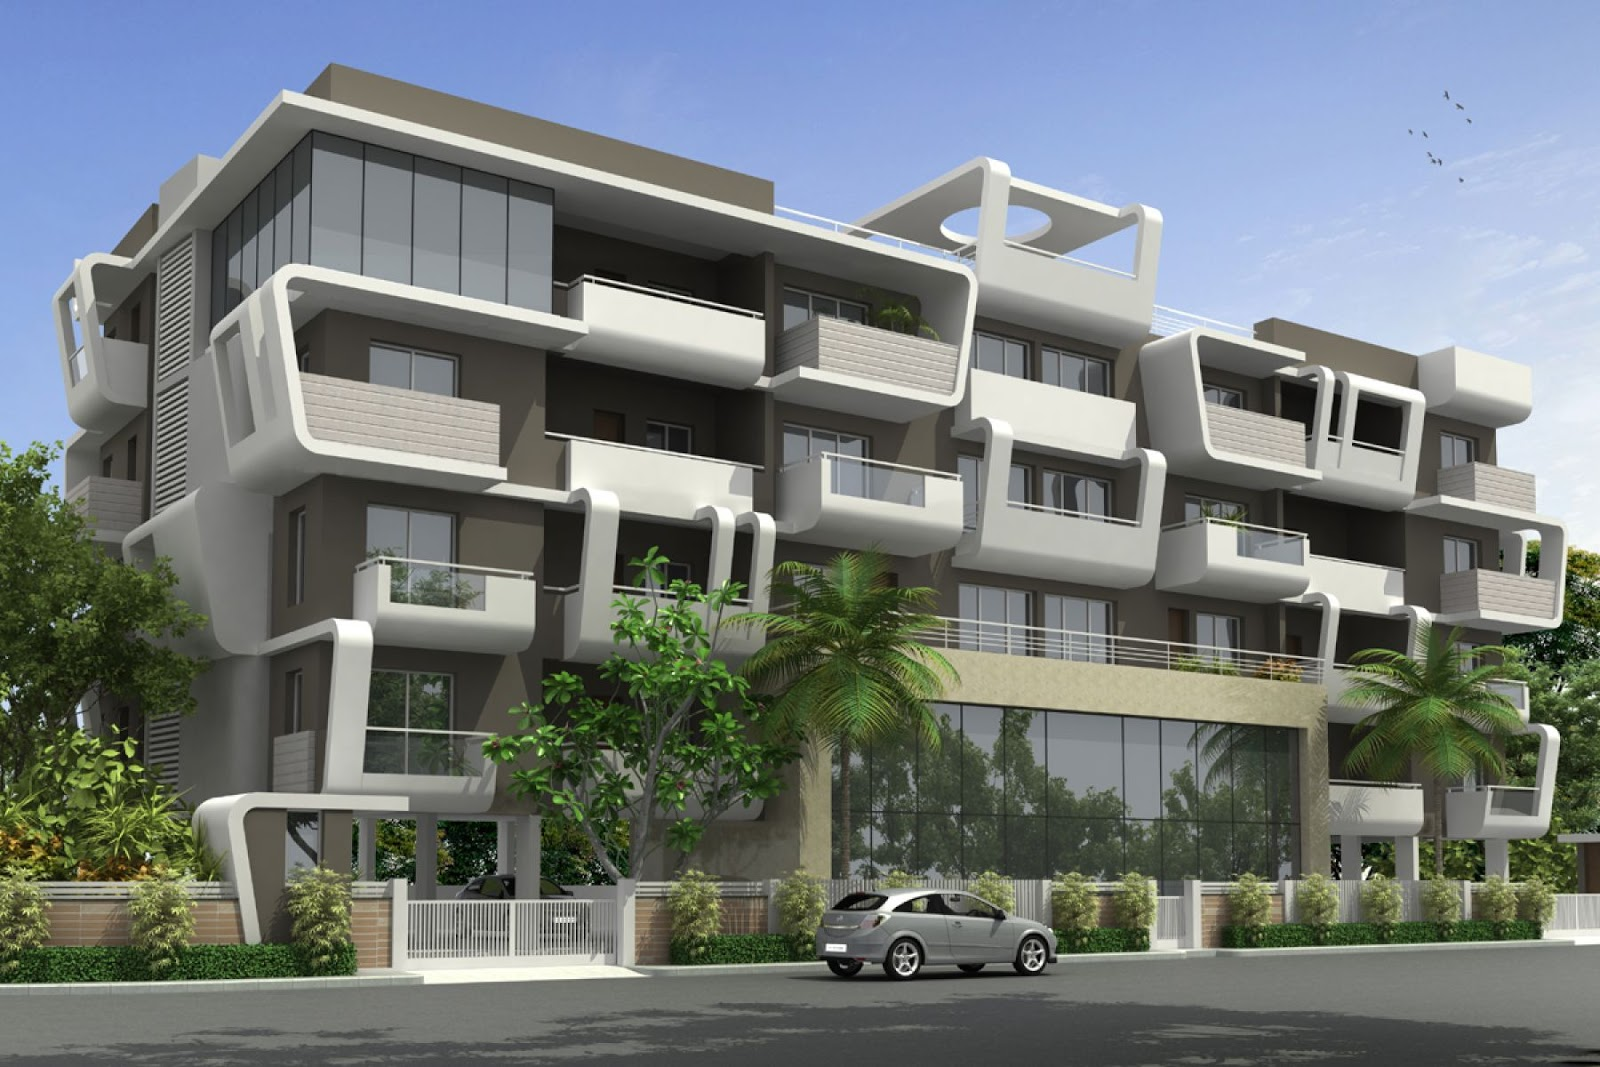 3D Building View http://3darchitecturevisualization.blogspot.com/2012/12/3d-apartments.html